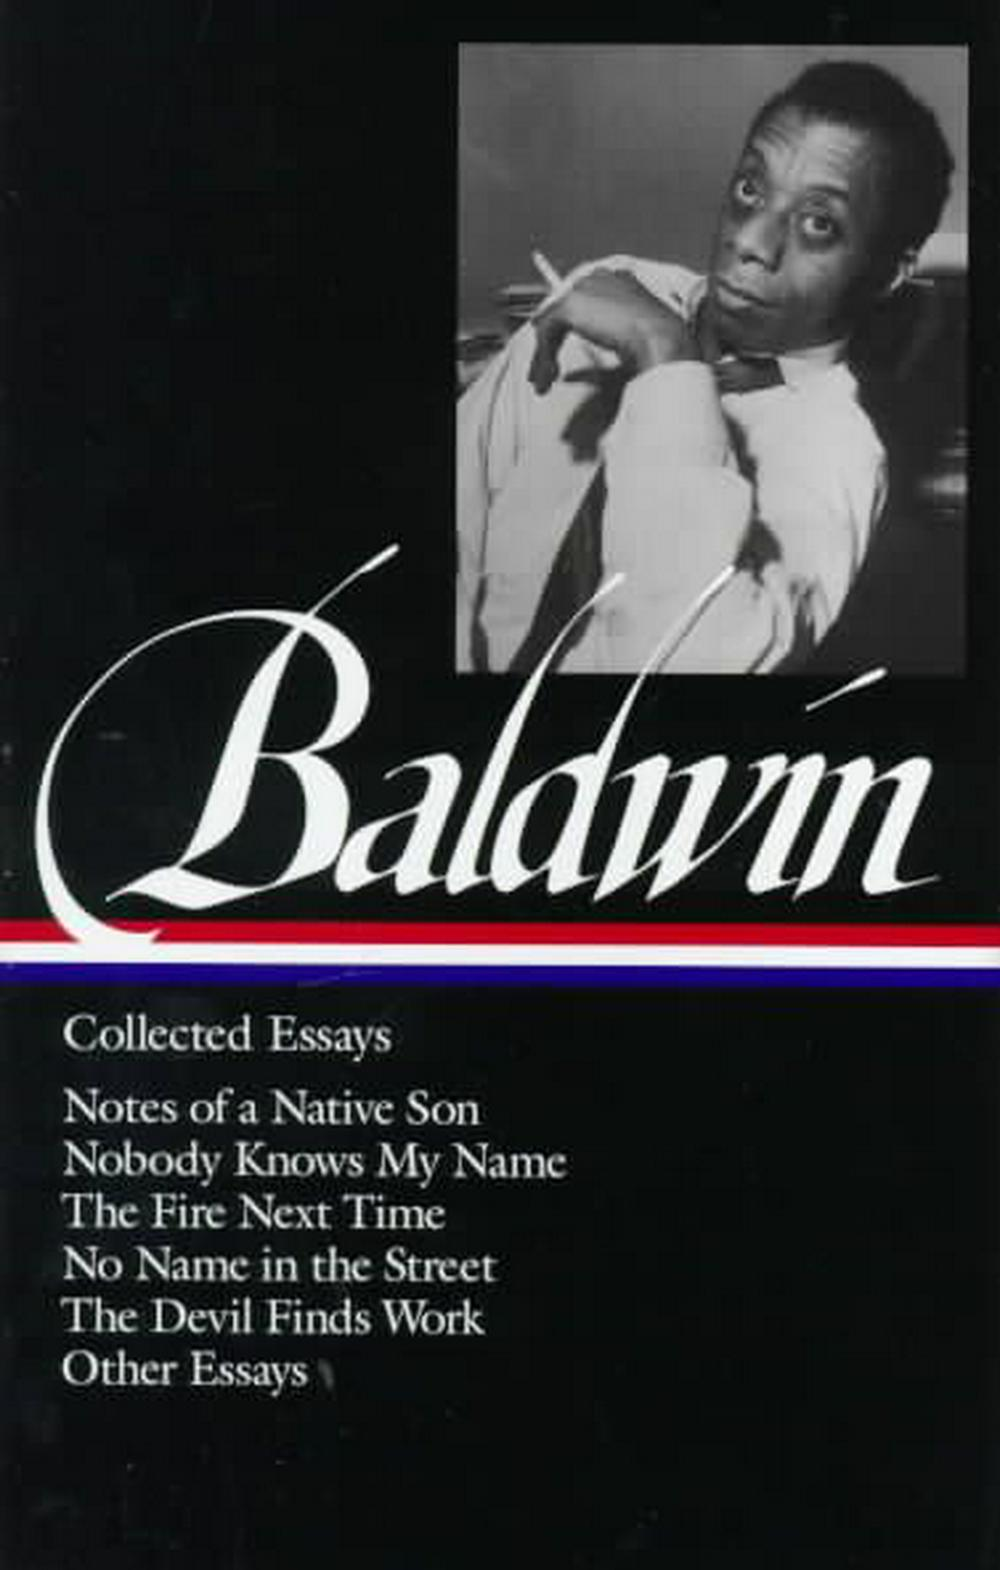 007 James Baldwin Collected Essays 9781883011529r5c3810cfda494 Essay Wondrous Table Of Contents Ebook Google Books Full